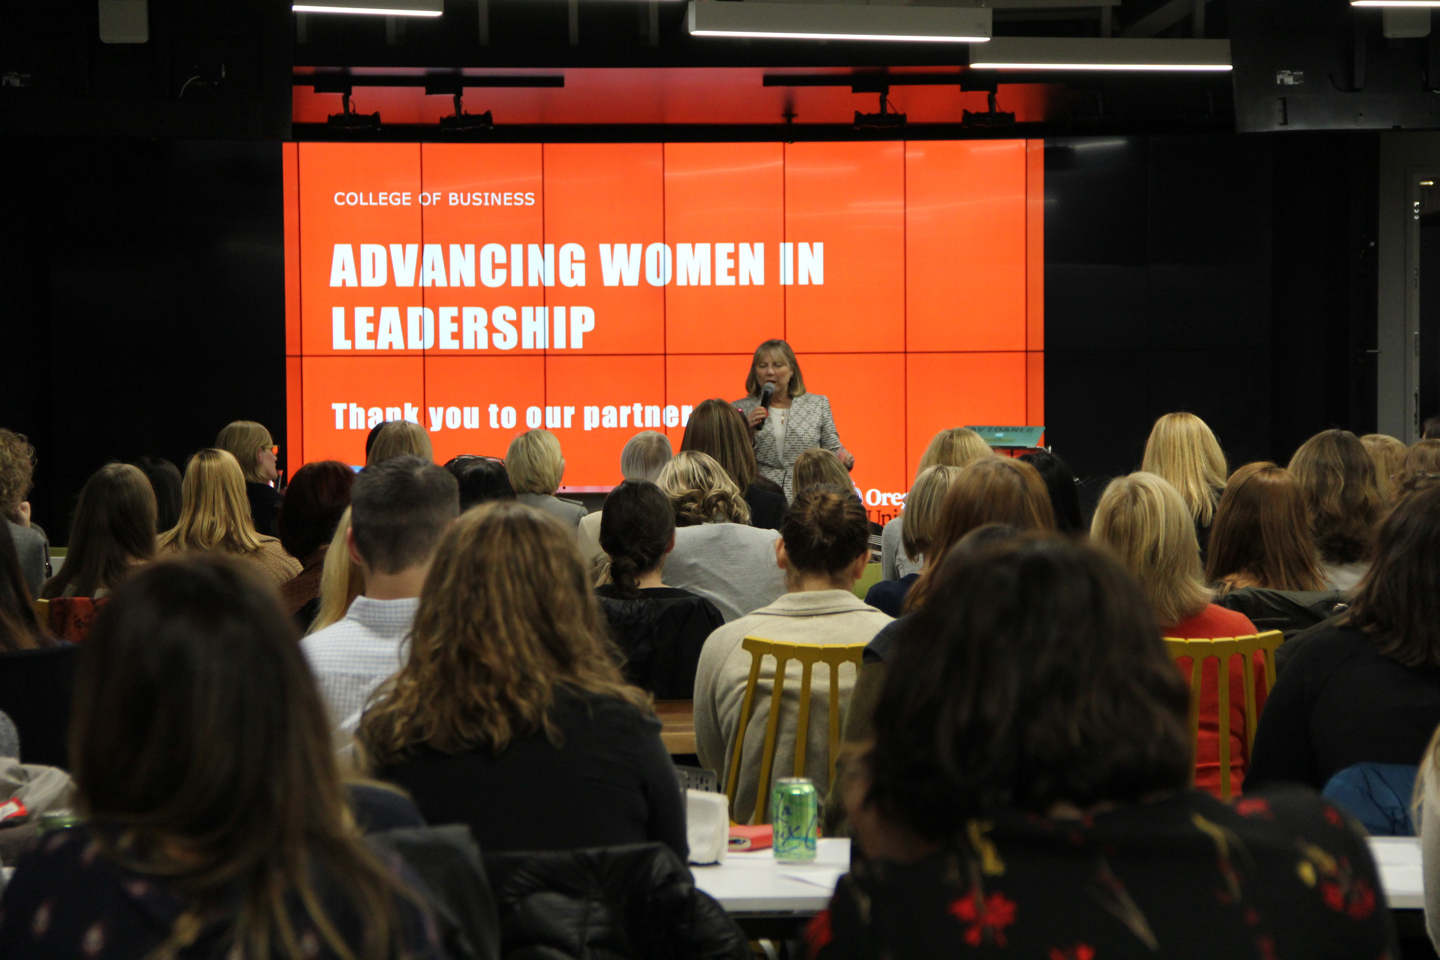 An Advancing Women in Leadership event